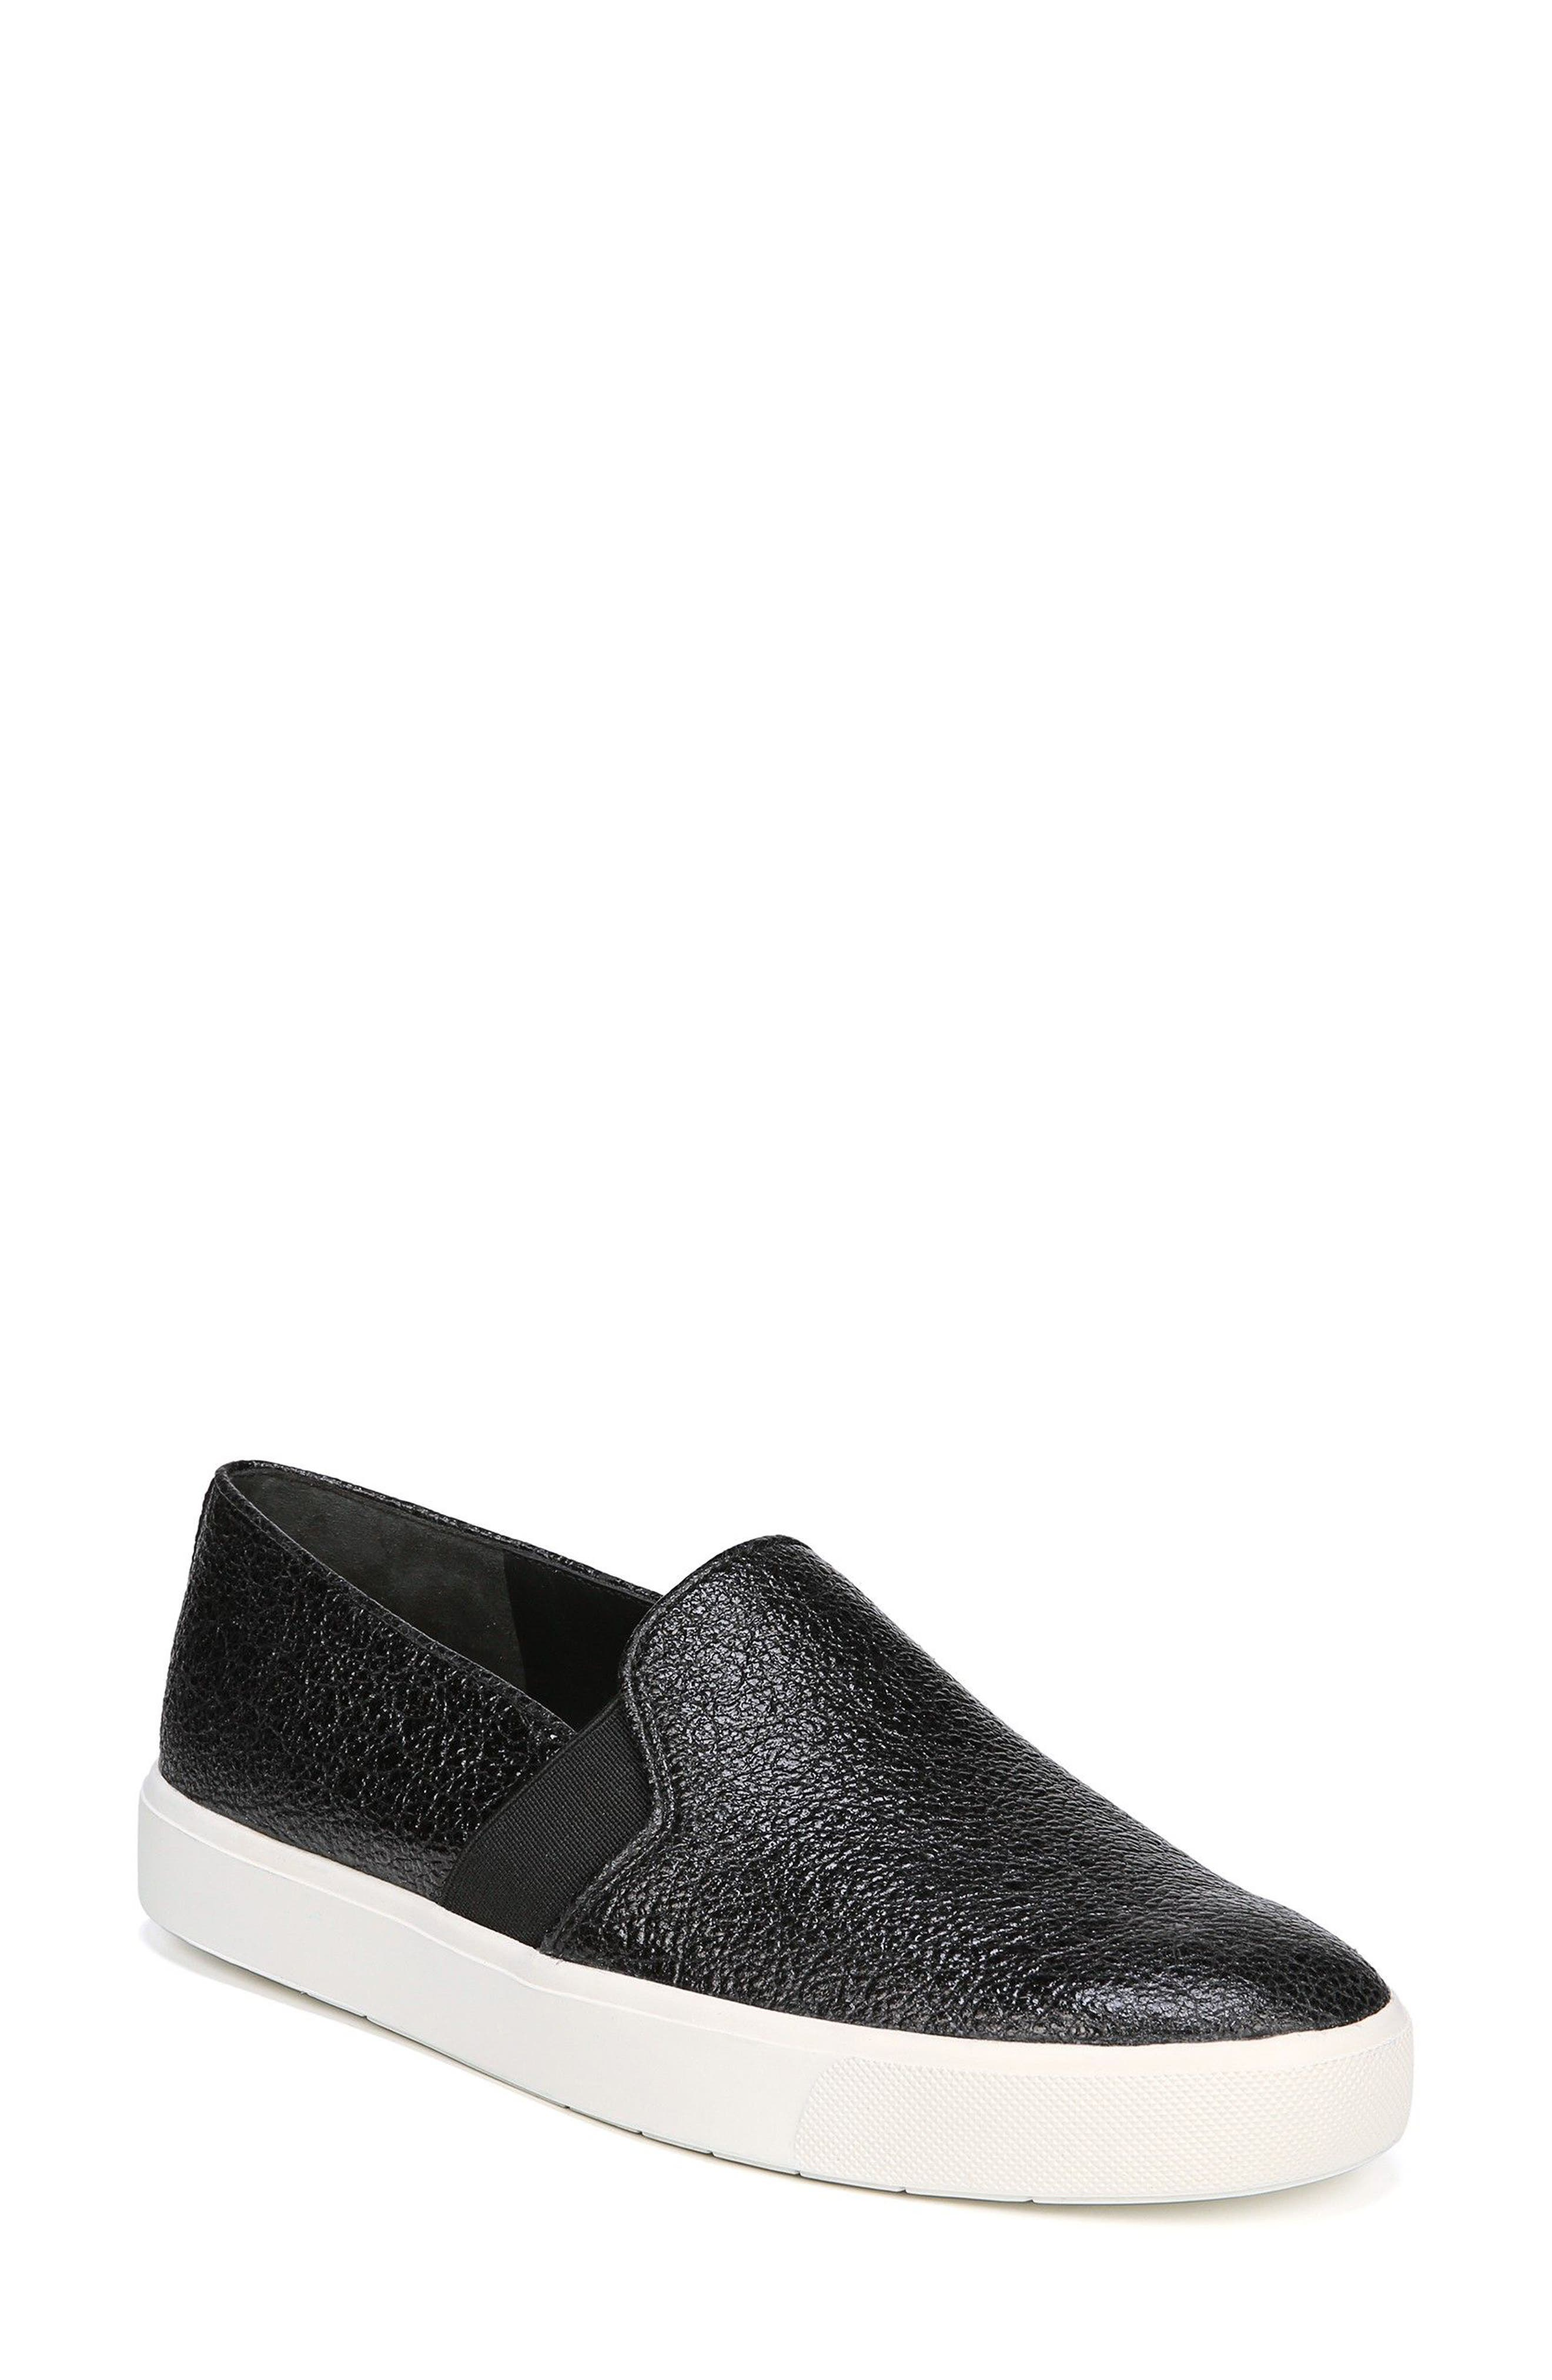 'Blair 12' Leather Slip-On Sneaker,                         Main,                         color, BLACK LEATHER